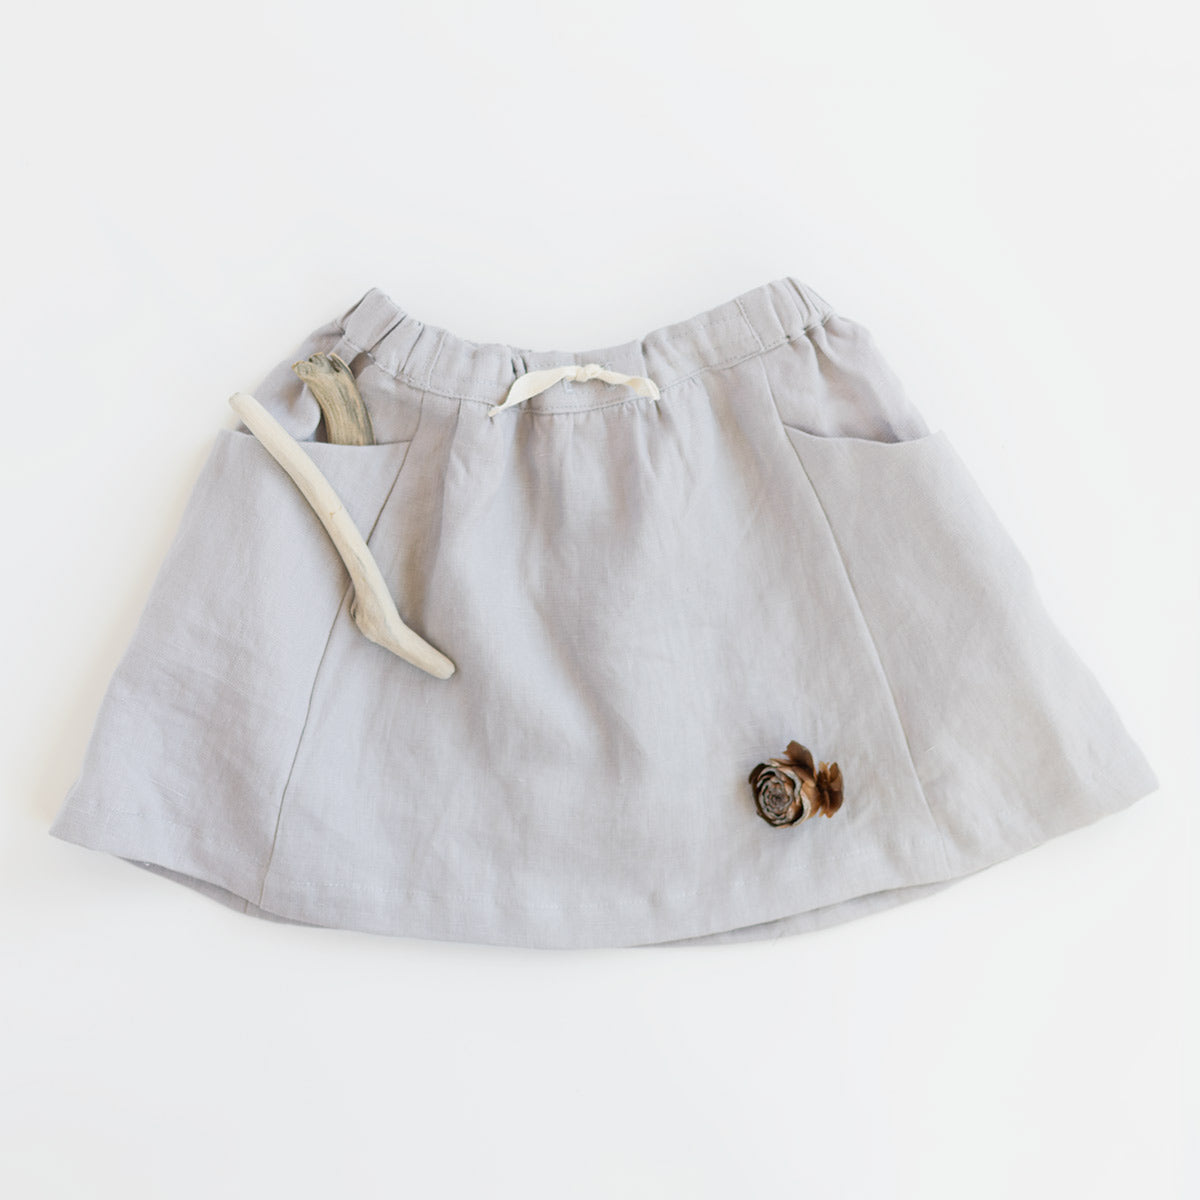 children's linen skirt pockets grey fair trade